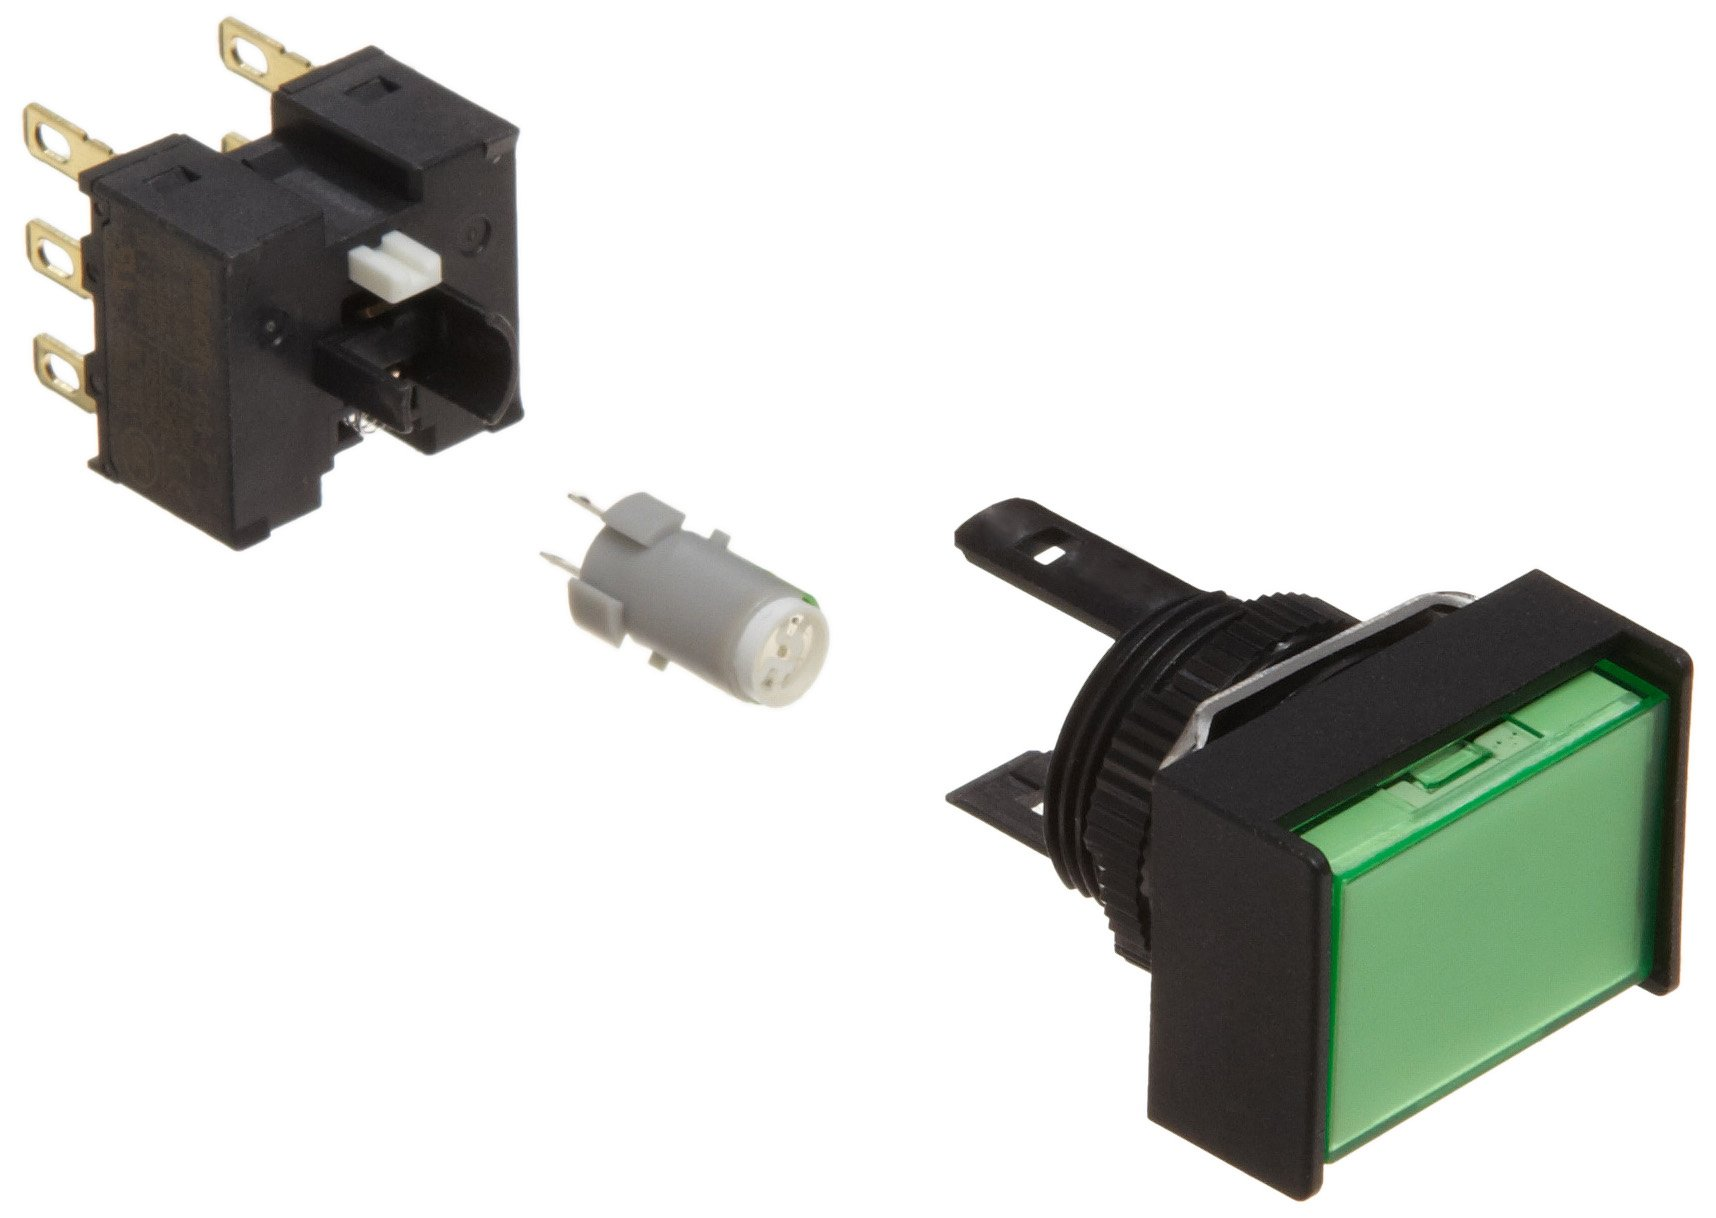 Omron A165L-JGM-5D-2 Two Way Guard Type Pushbutton and Switch, Solder Terminal, IP65 Oil-Resistant, 16mm Mounting Aperture, LED Lighted, Momentary Operation, Rectangular, Green, 5 VDC Rated Voltage, Double Pole Double Throw Contacts